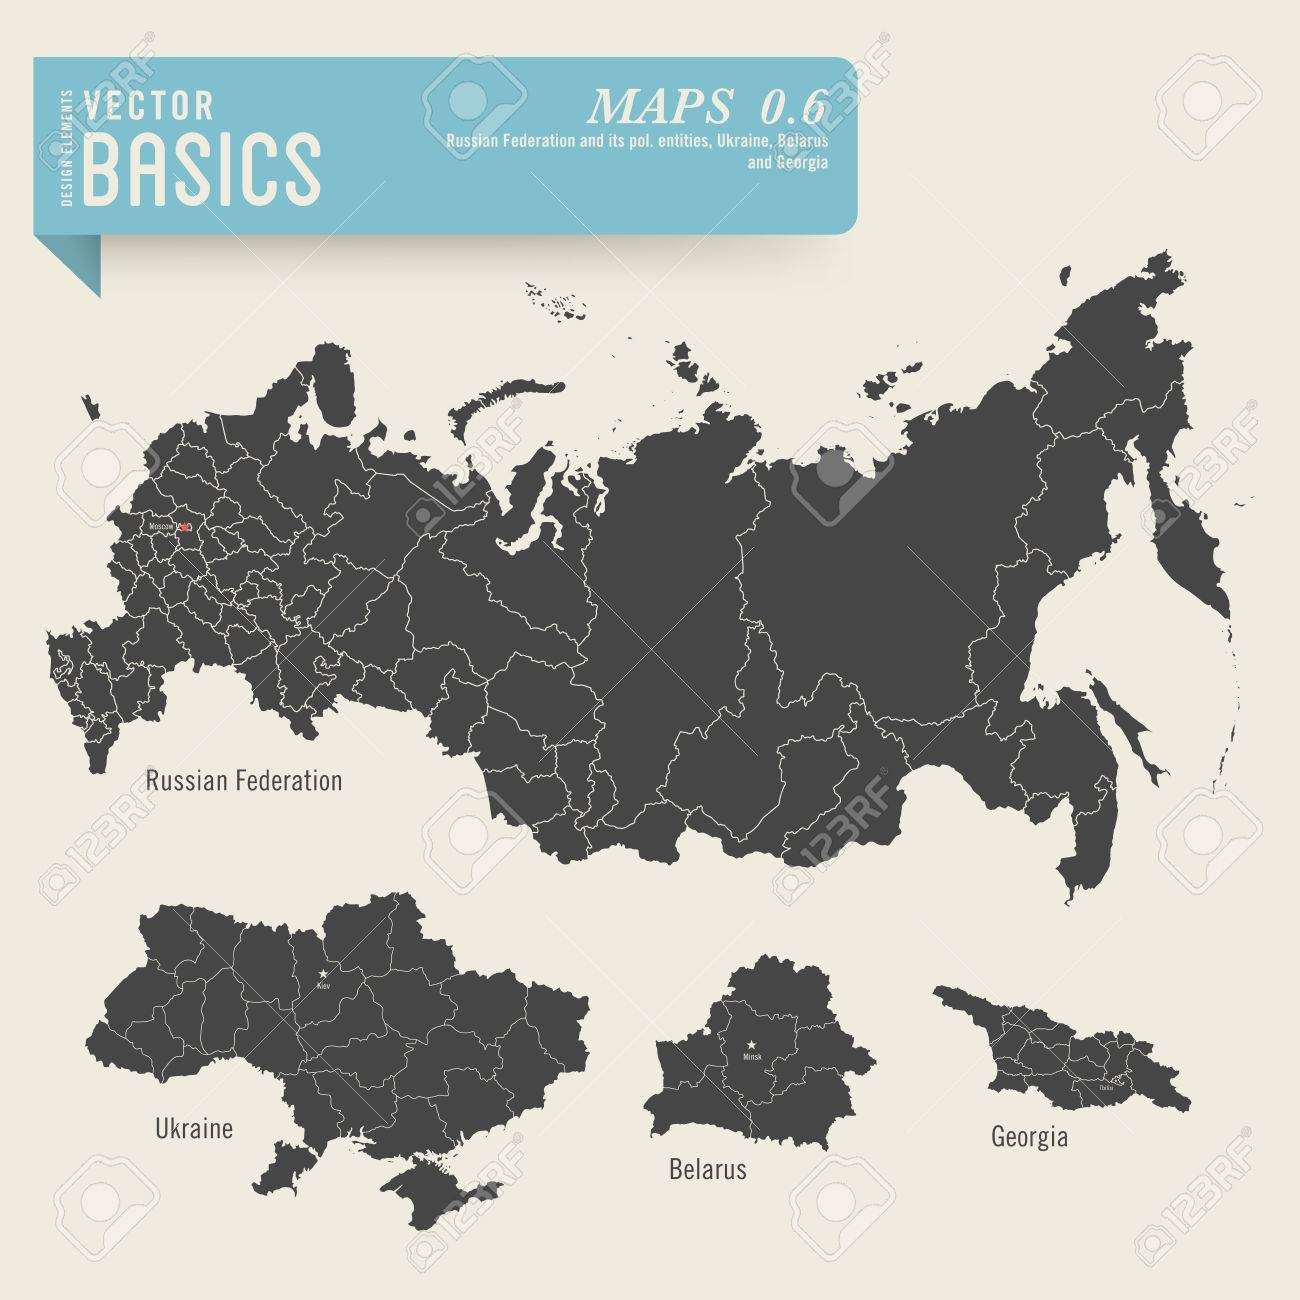 Maps Of The Russian Federation Ukraine Belarus And Georgia - Georgia map ukraine